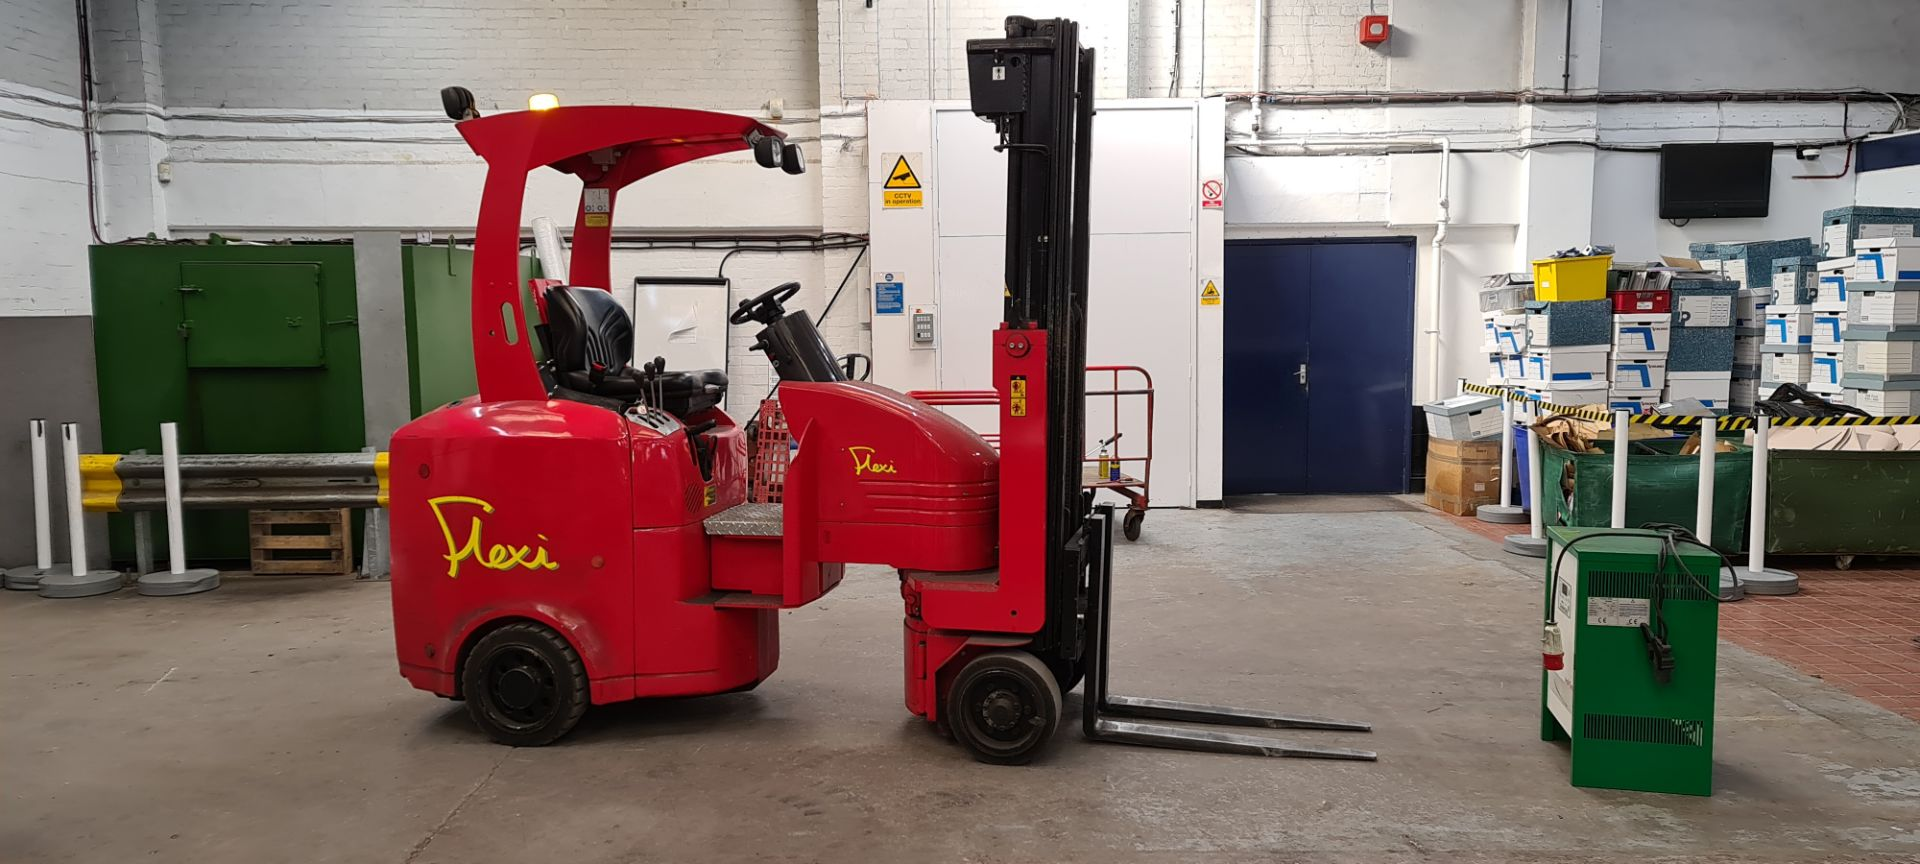 2014 Flexi Euro AC 'bendy' electric Fork Lift Truck - Image 3 of 29